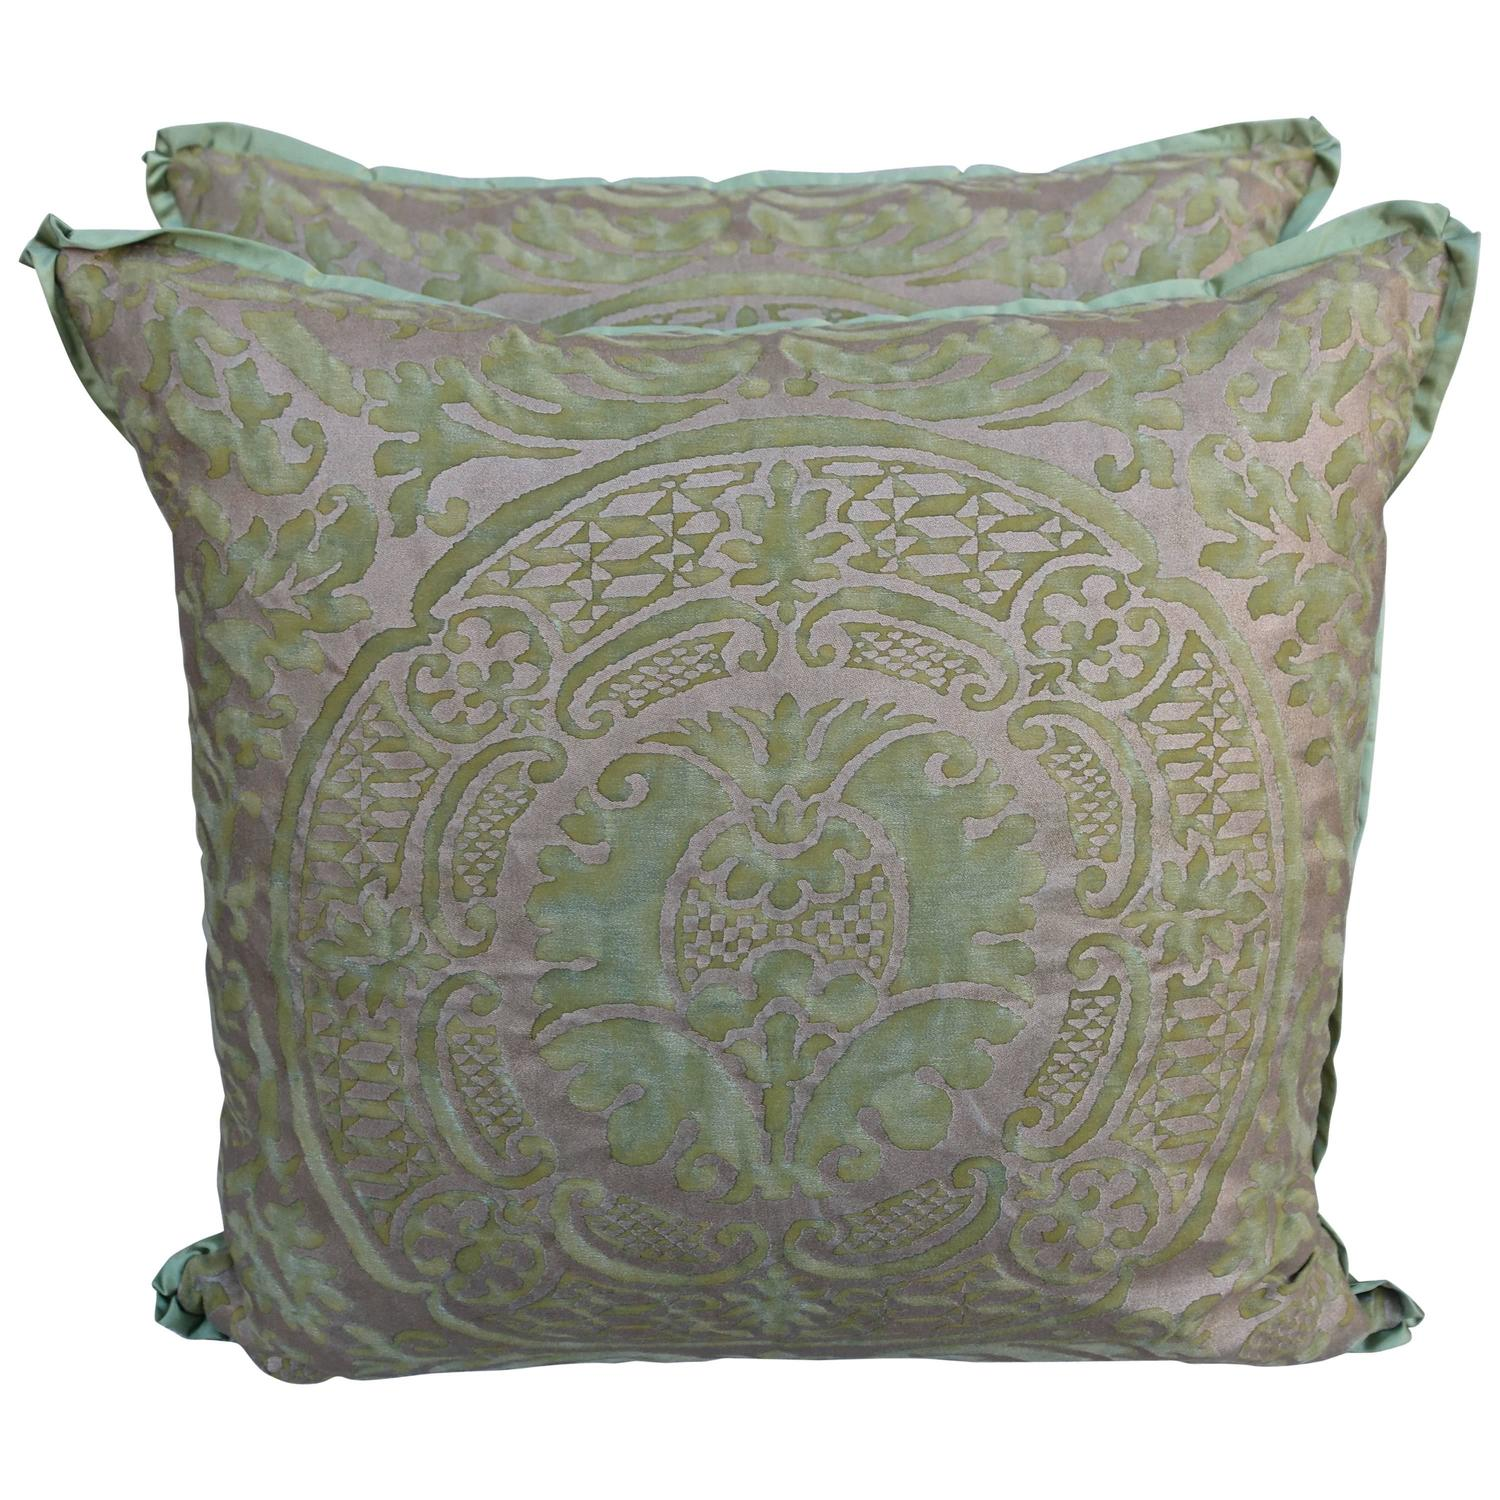 Orsini Patterned Green And Gold Fortuny Pillows